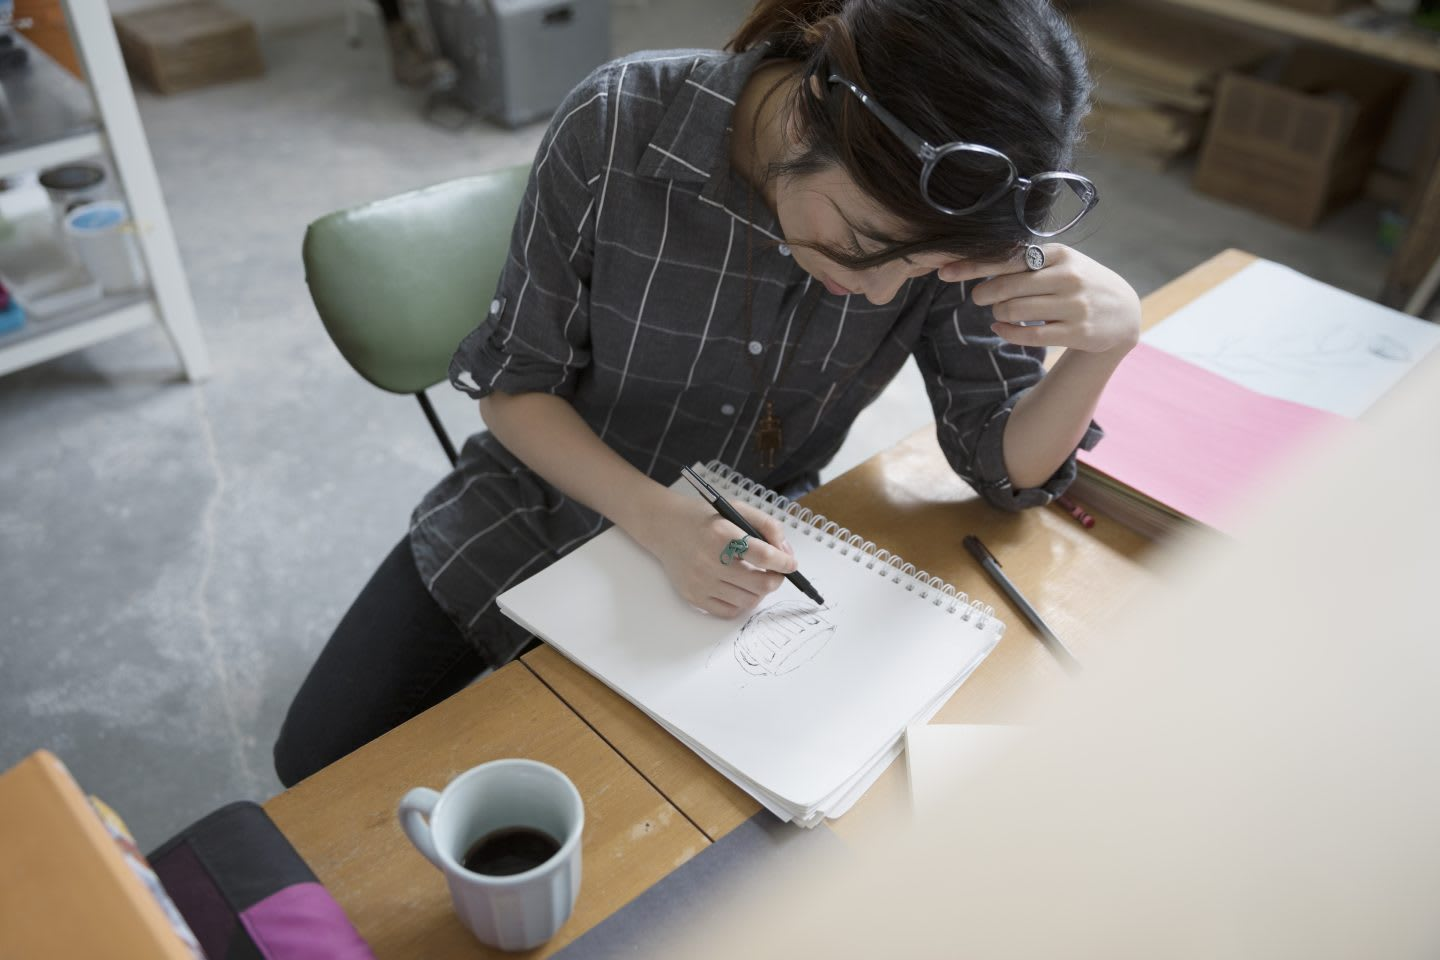 Woman with sunglasses sketching at a desk with concentration, studio, artist, female, coffee cup, notebook, art, focus, creativity, GamePlan A